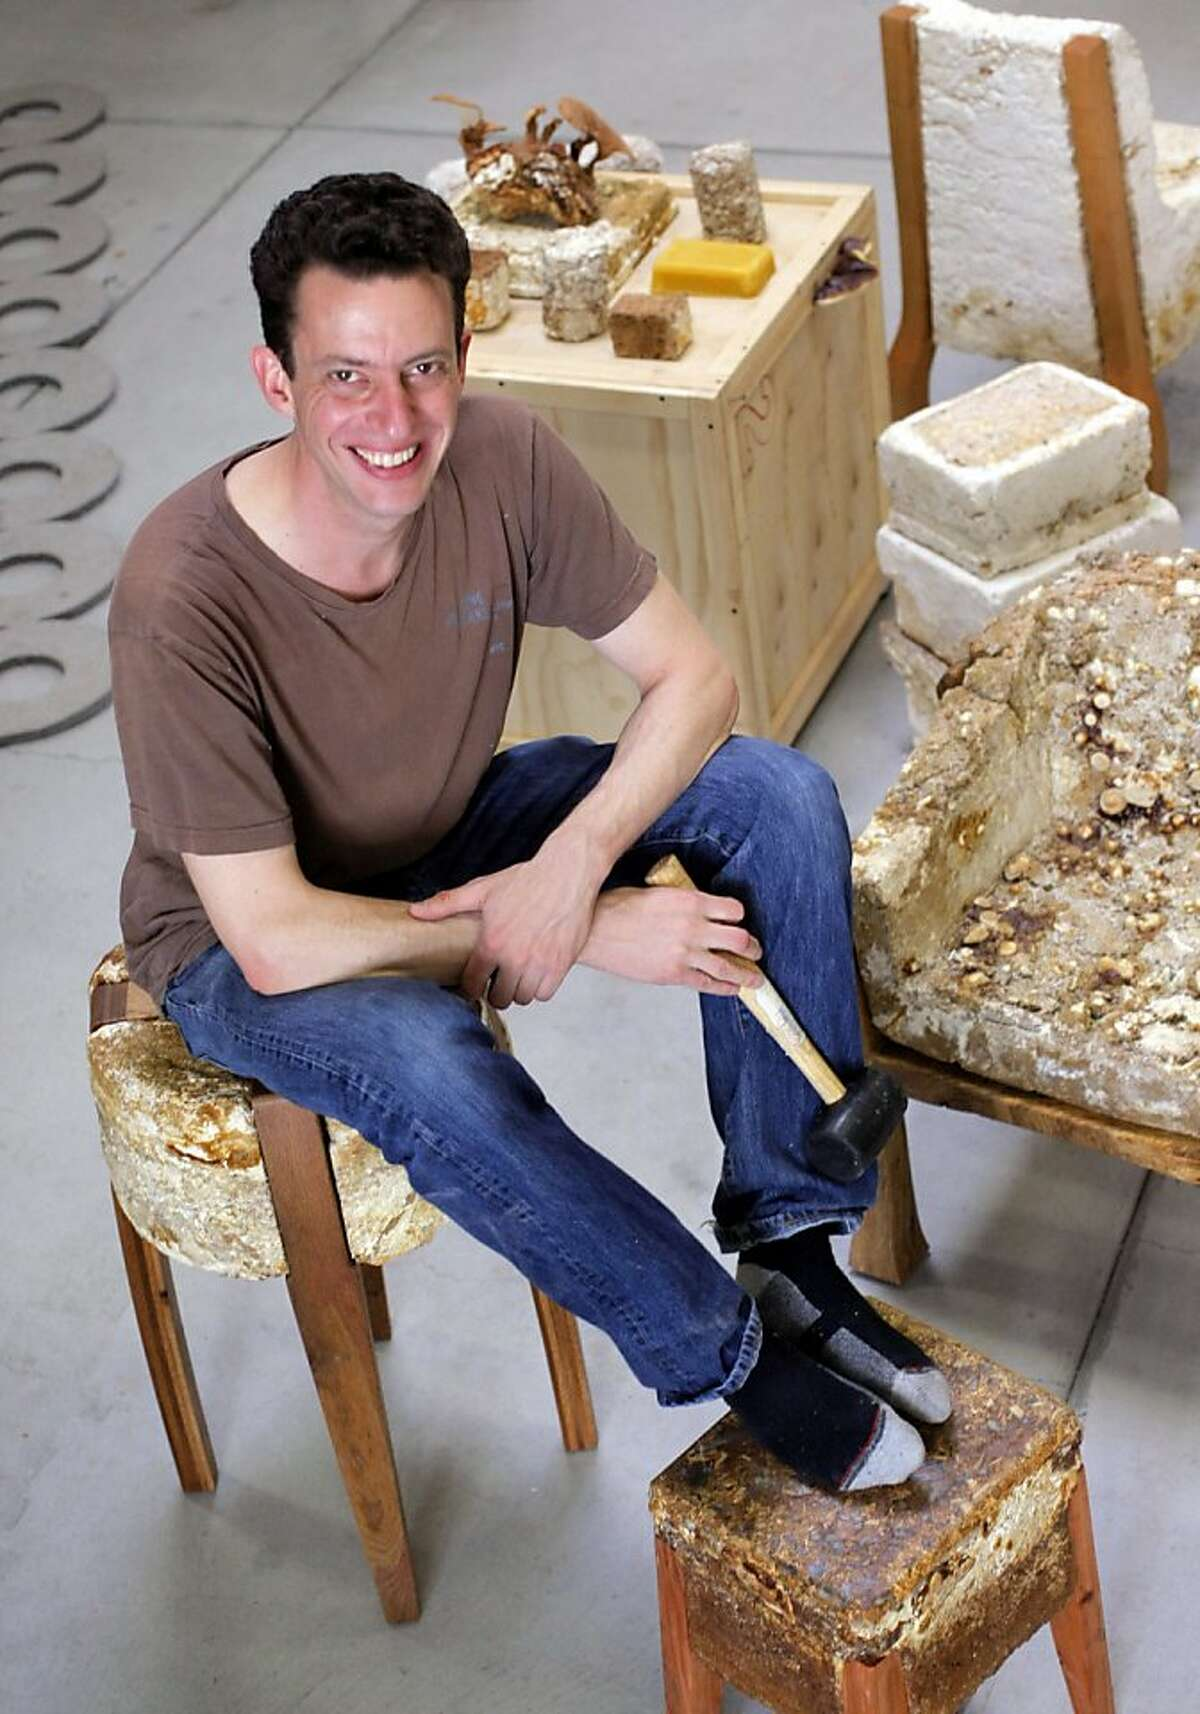 Artist Phil Ross surrounded by some of his fungi furniture at The Workshop Residence in San Francisco, Calif., Saturday, October 13, 2012.